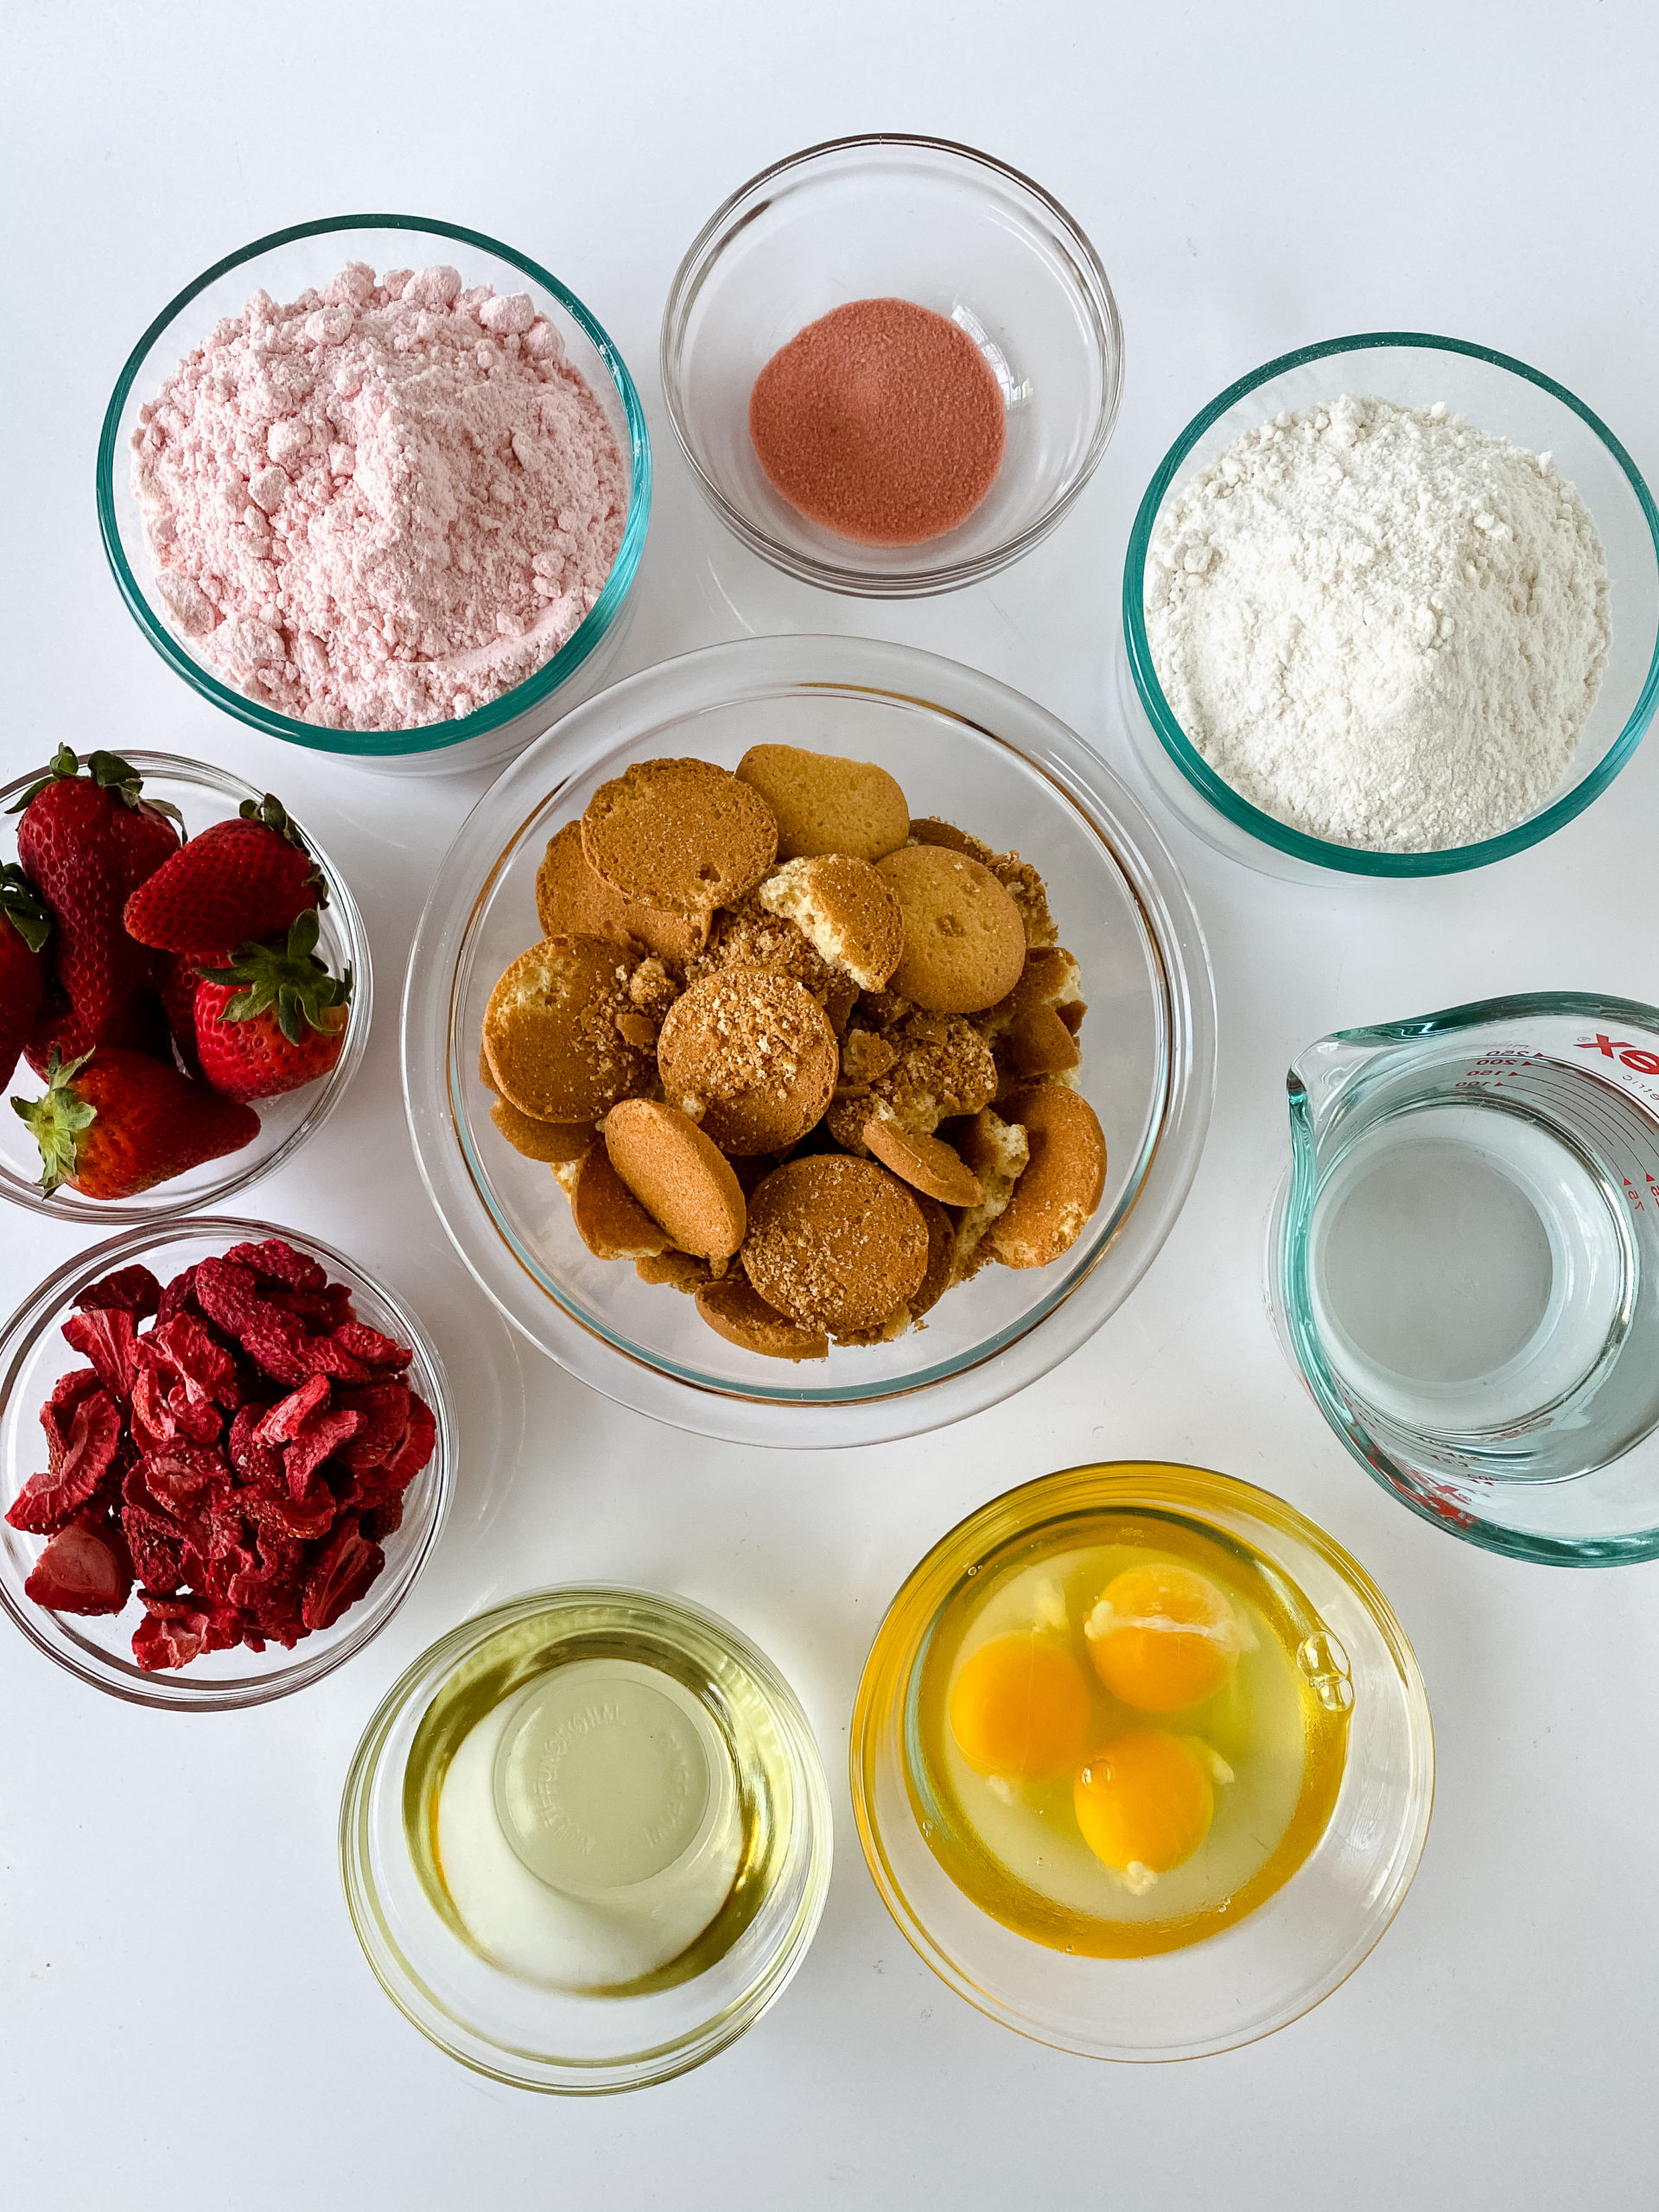 Cake mixes, strawberries, eggs and ingredients needed to make the cake.